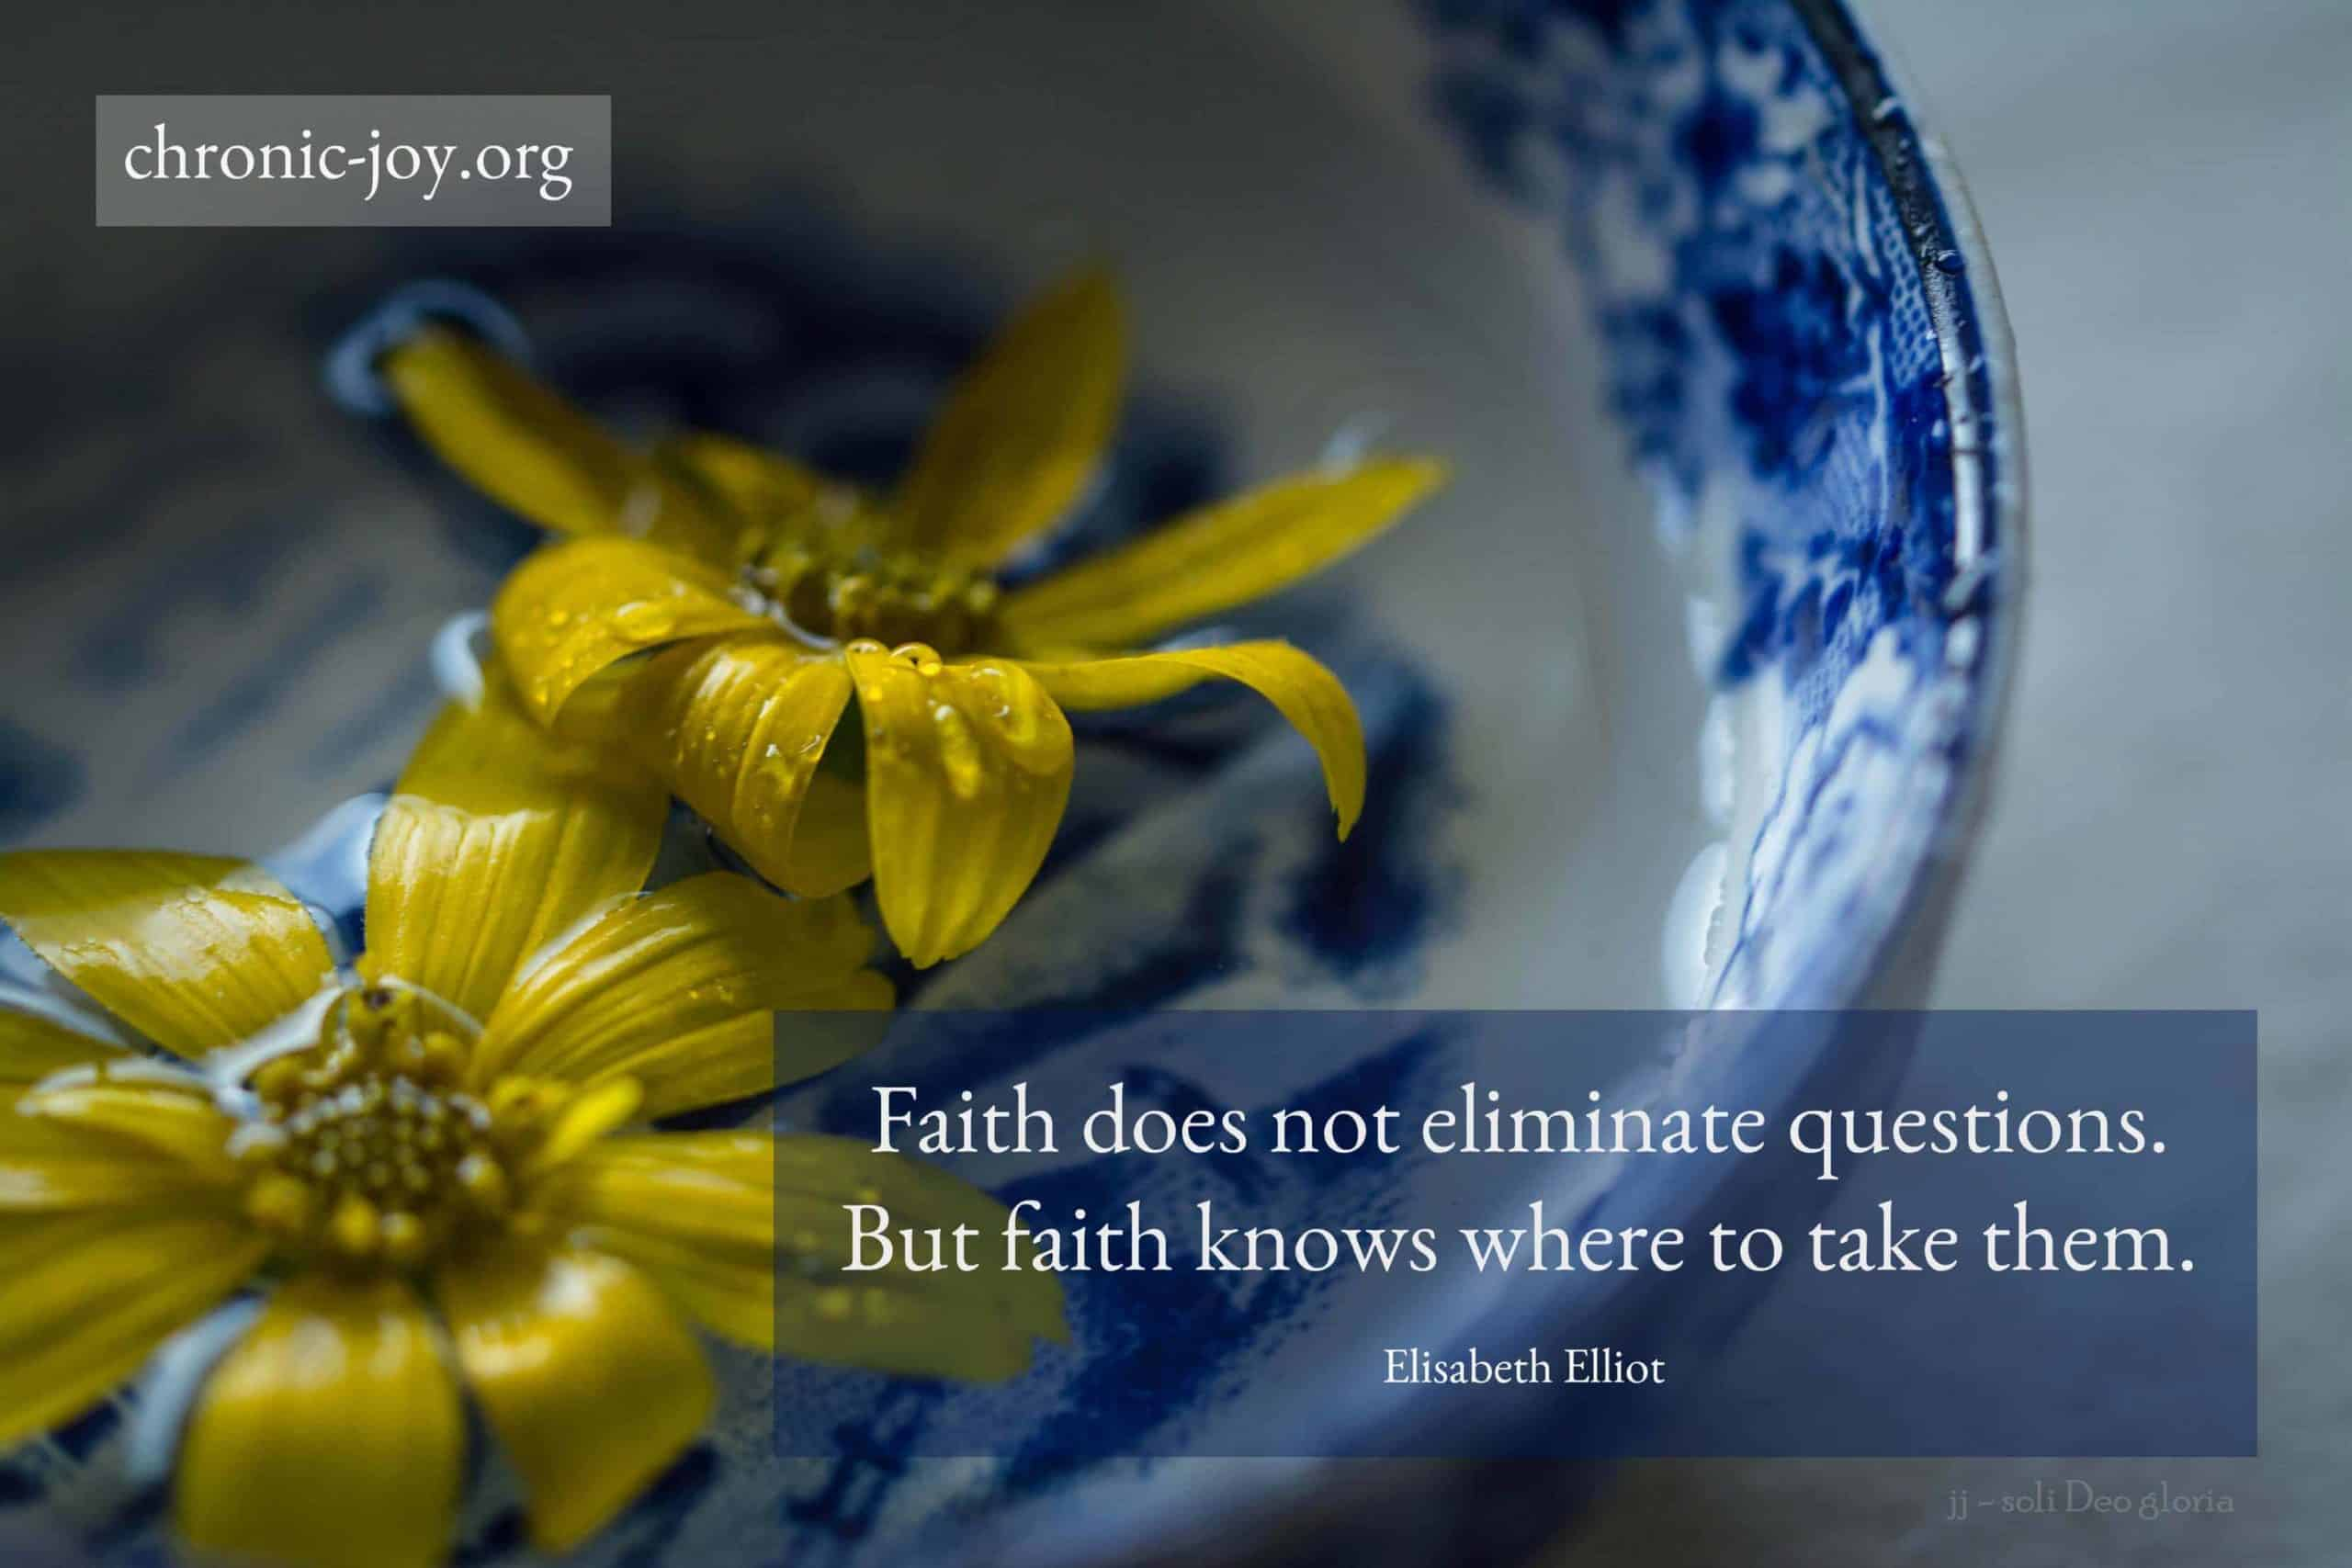 Faith does not eliminate questions...